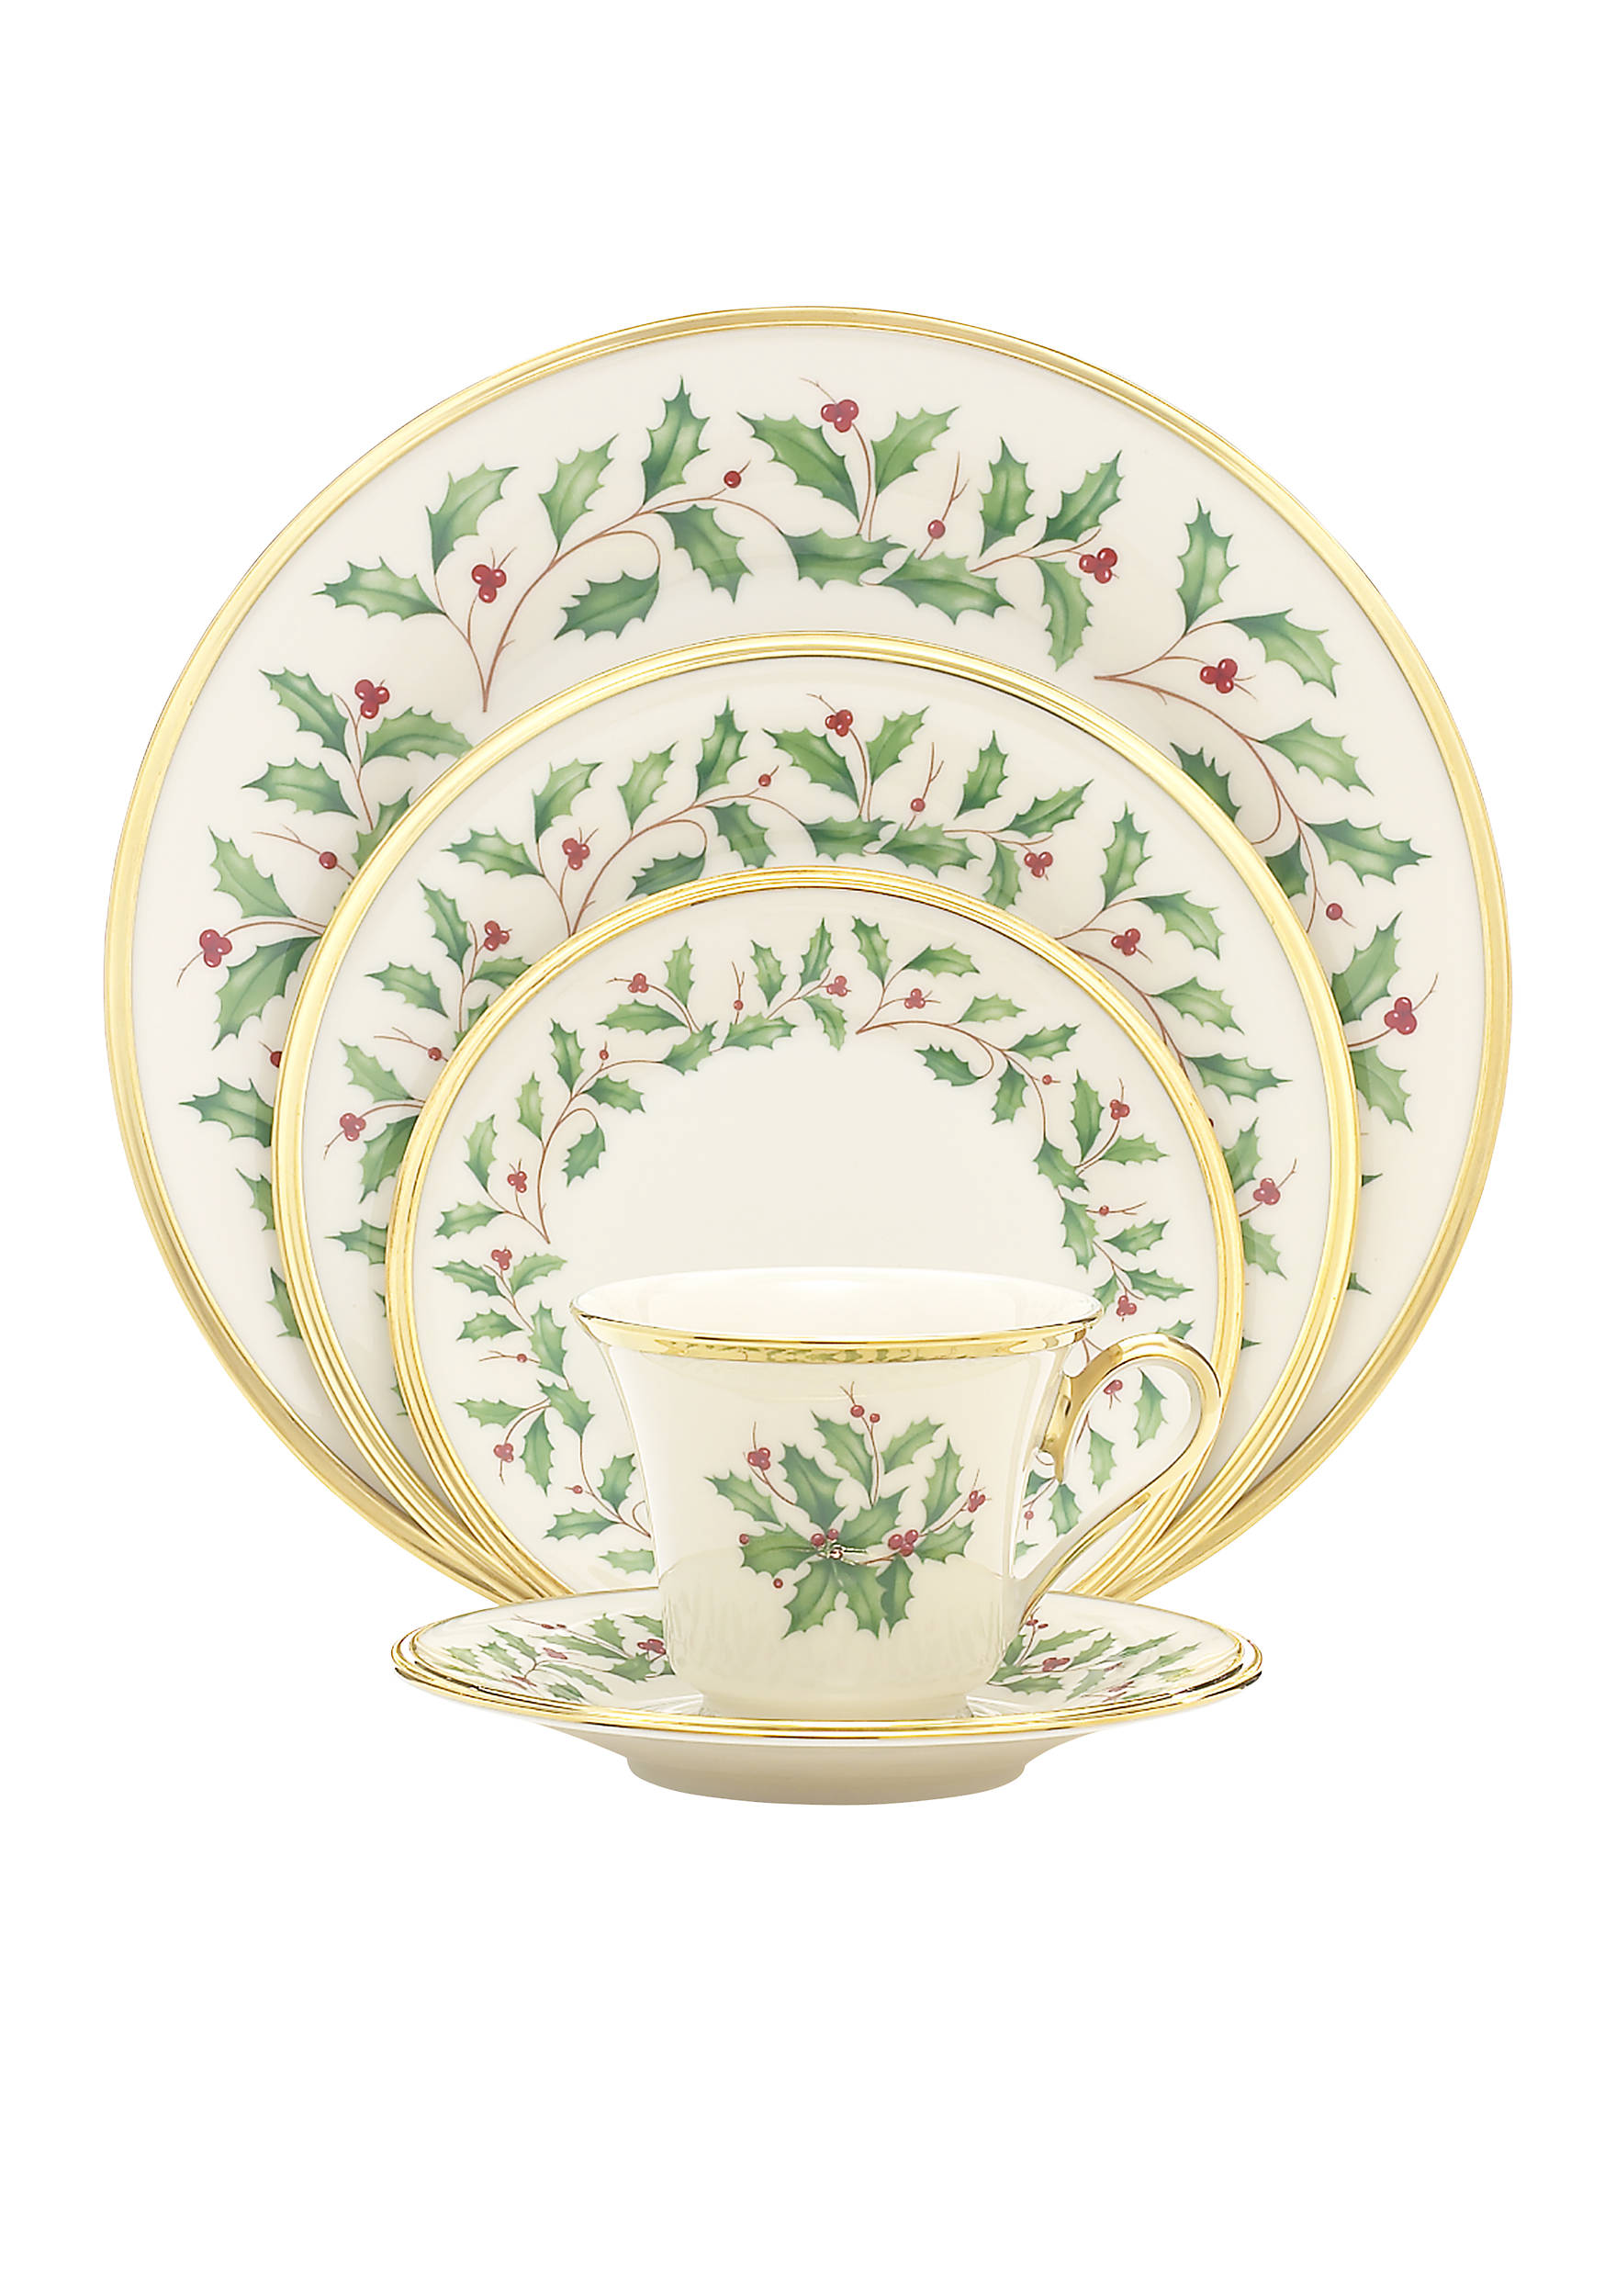 Lenox holiday dinnerware belk collection reviewsmspy